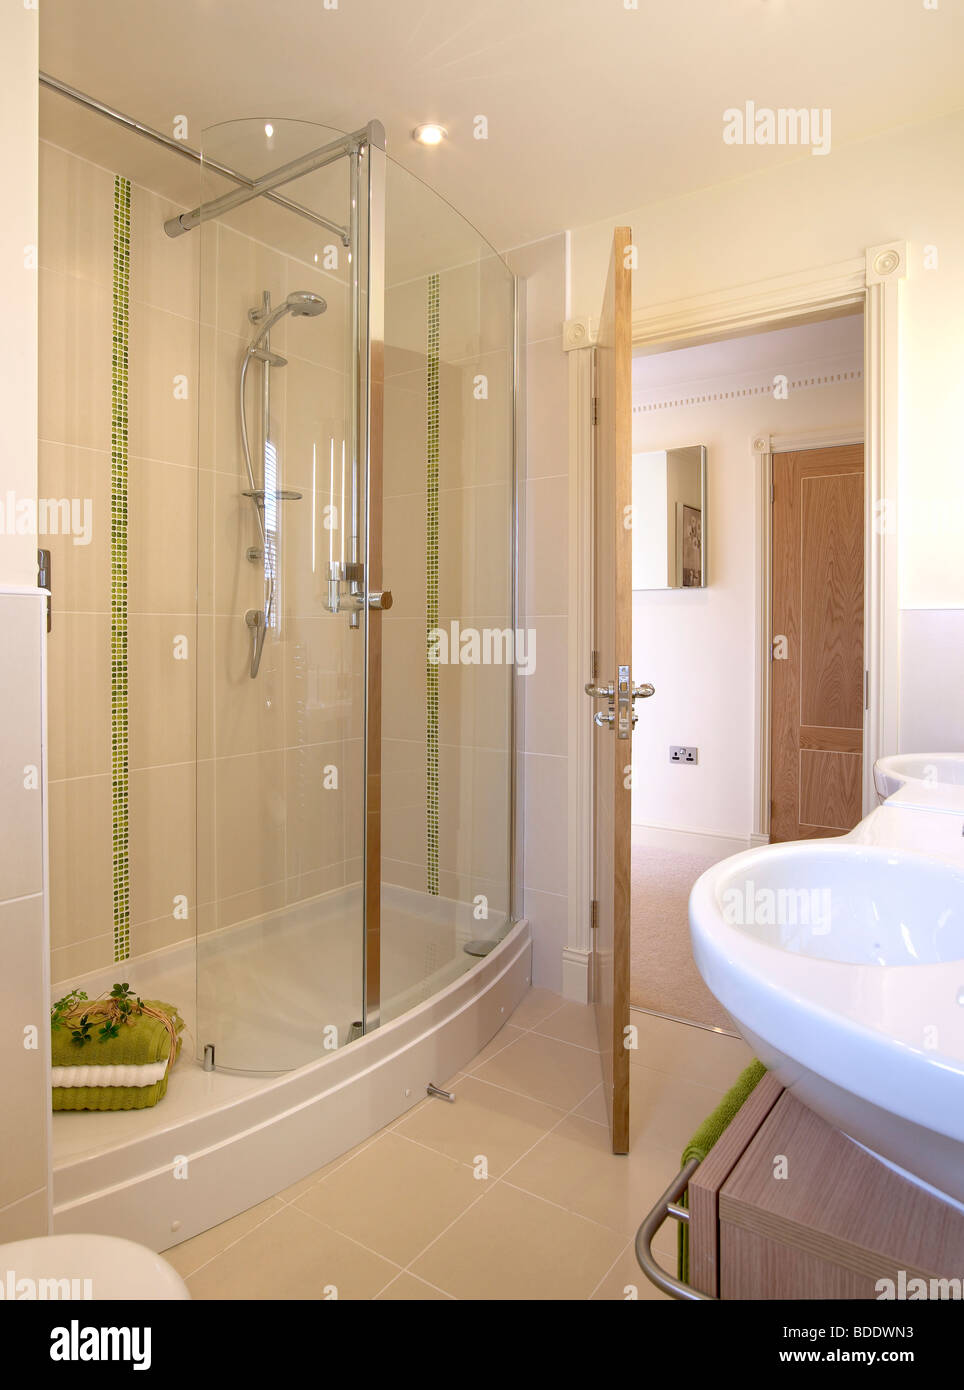 Ablution Dans Salle De Bain Avec Toilette ~ ablutions room photos ablutions room images alamy